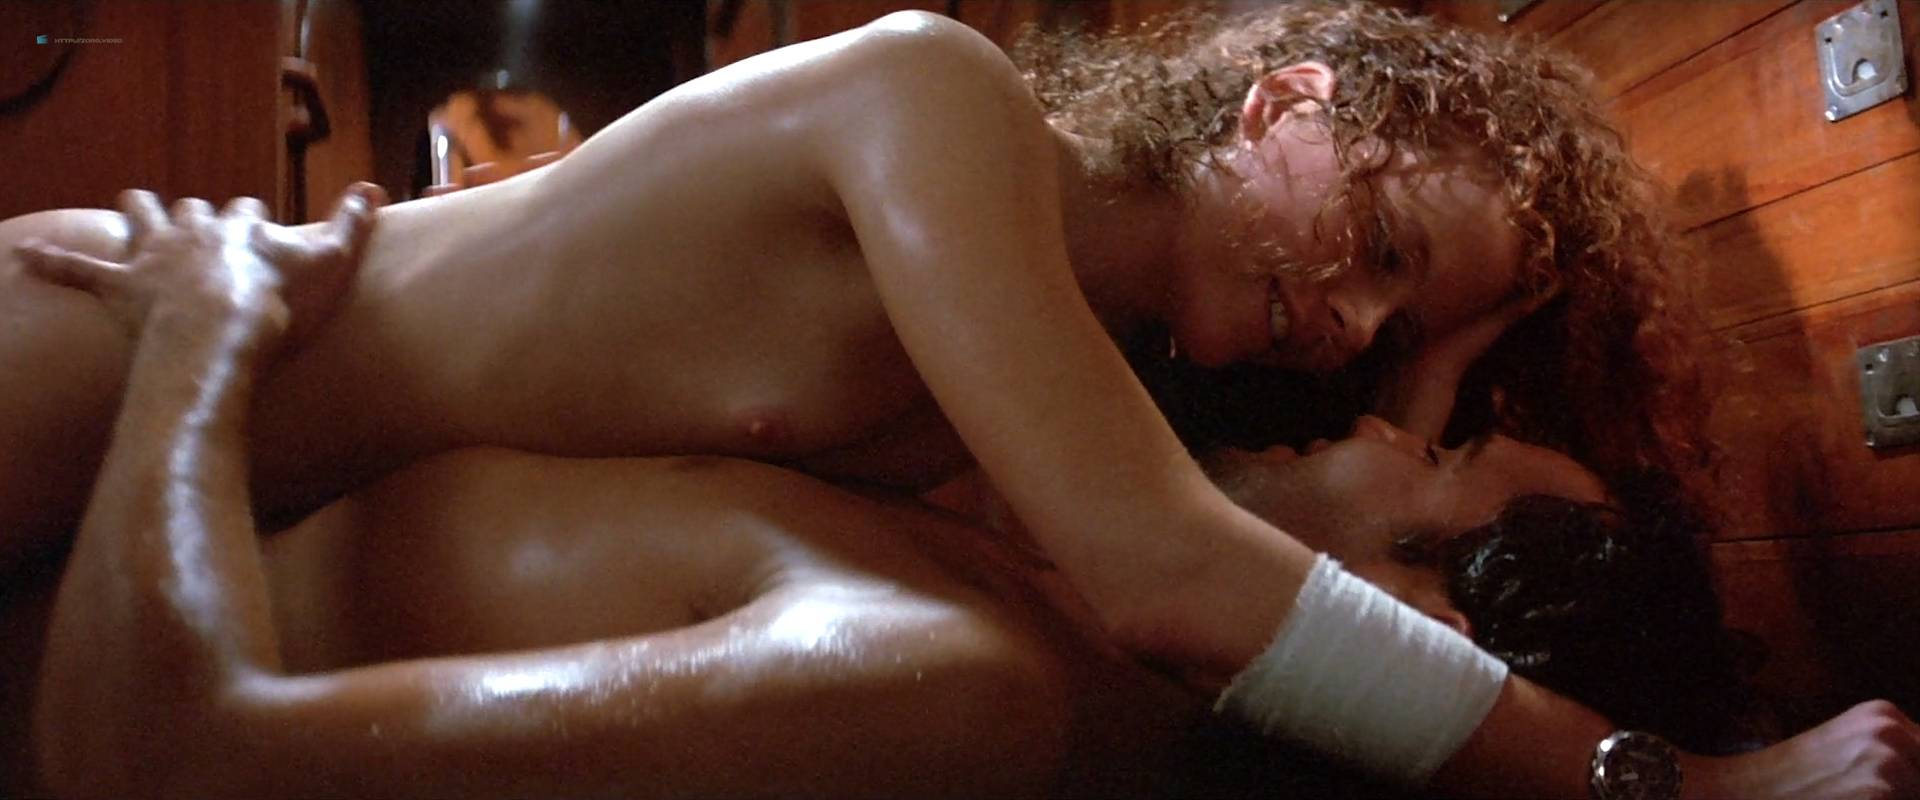 Nicole Kidman nude topless and butt naked in - Dead Calm (1989) HD 1080p 07